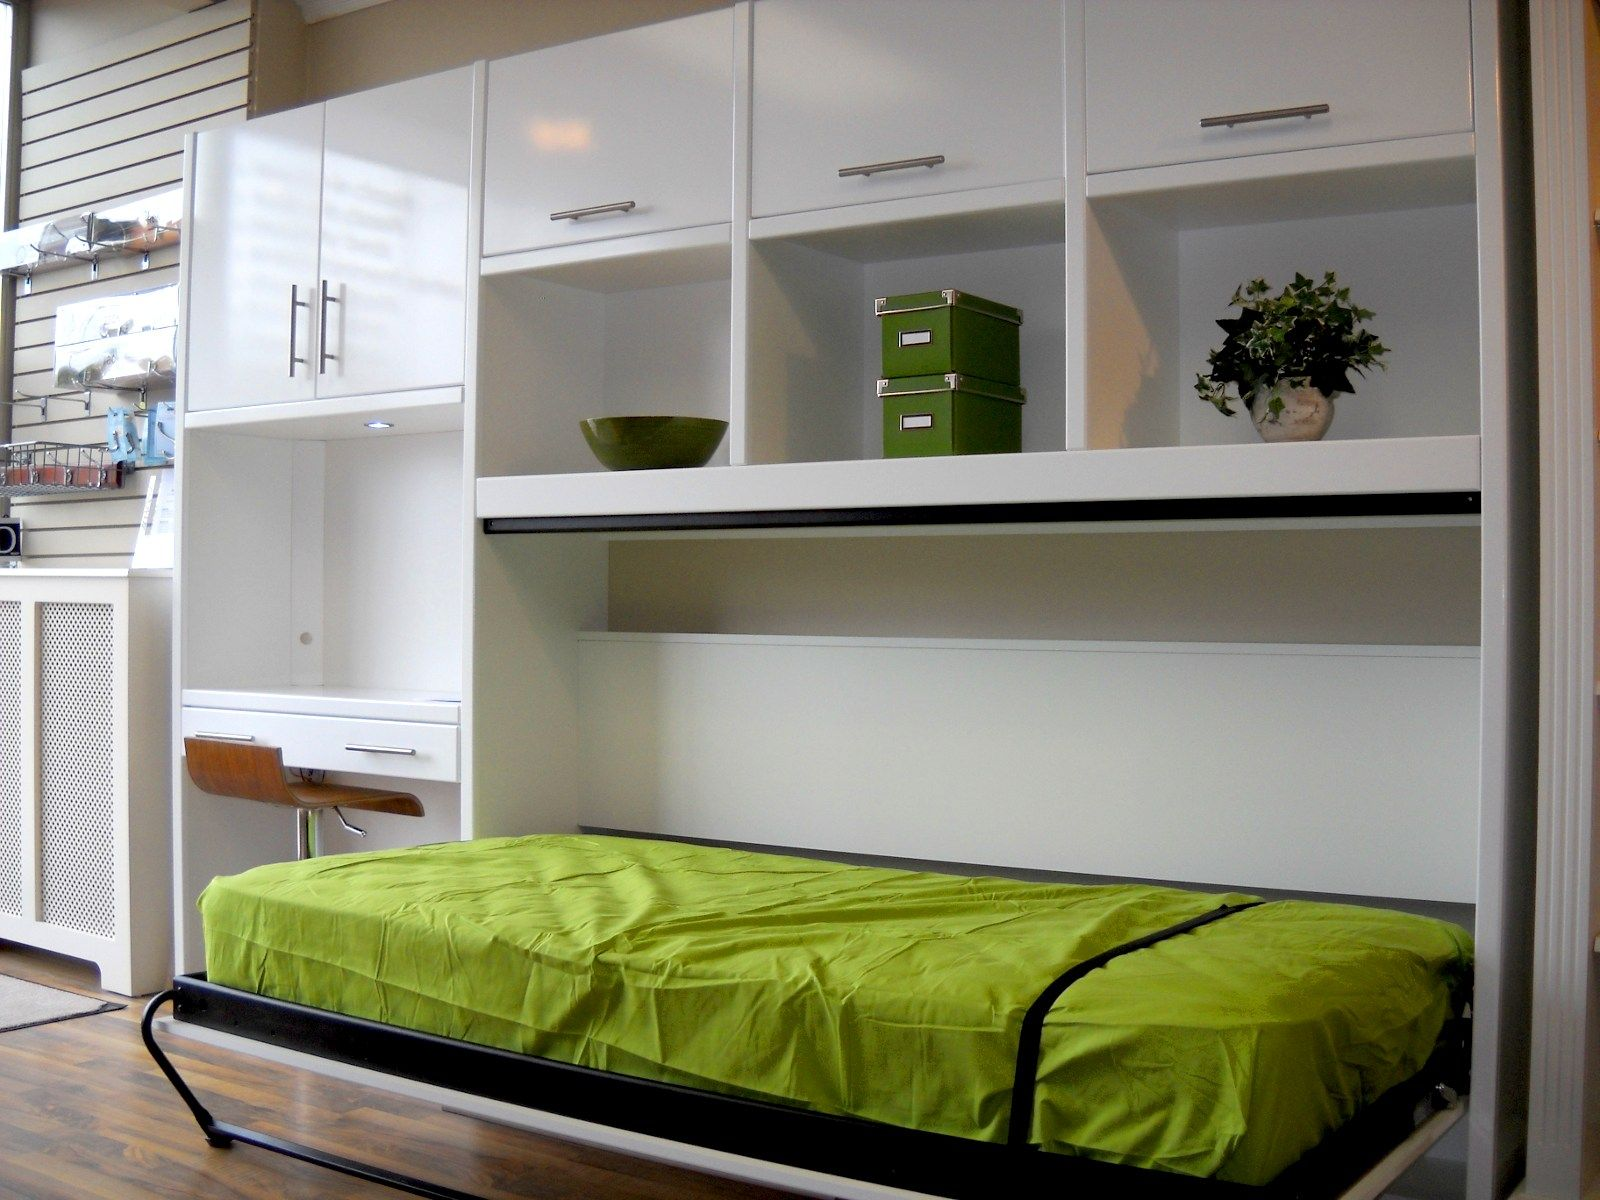 Bedroom cool green murphy bed on white cabinet feats decoration racks and white desk with brown leather chair fabulous murphy bed ikea design